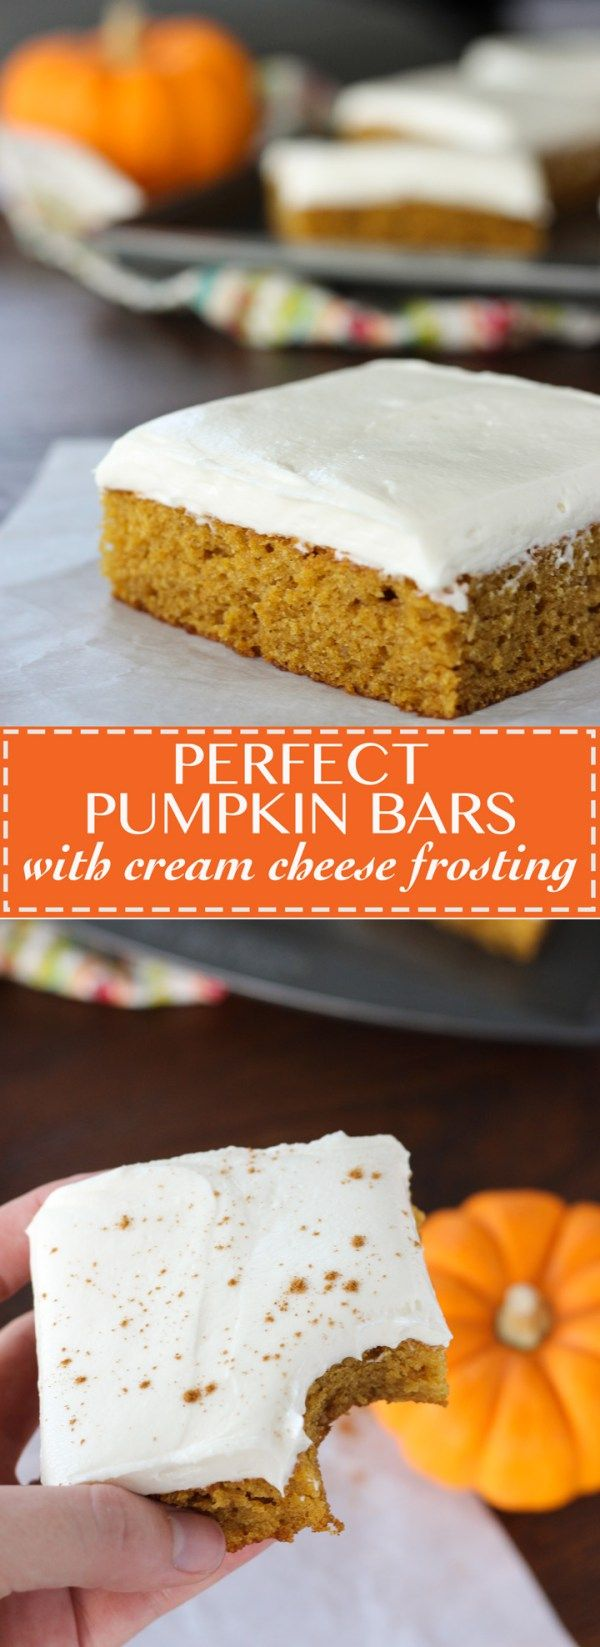 Perfect Pumpkin Bars with Cream Cheese Frosting - the perfect way to celebrate fall!